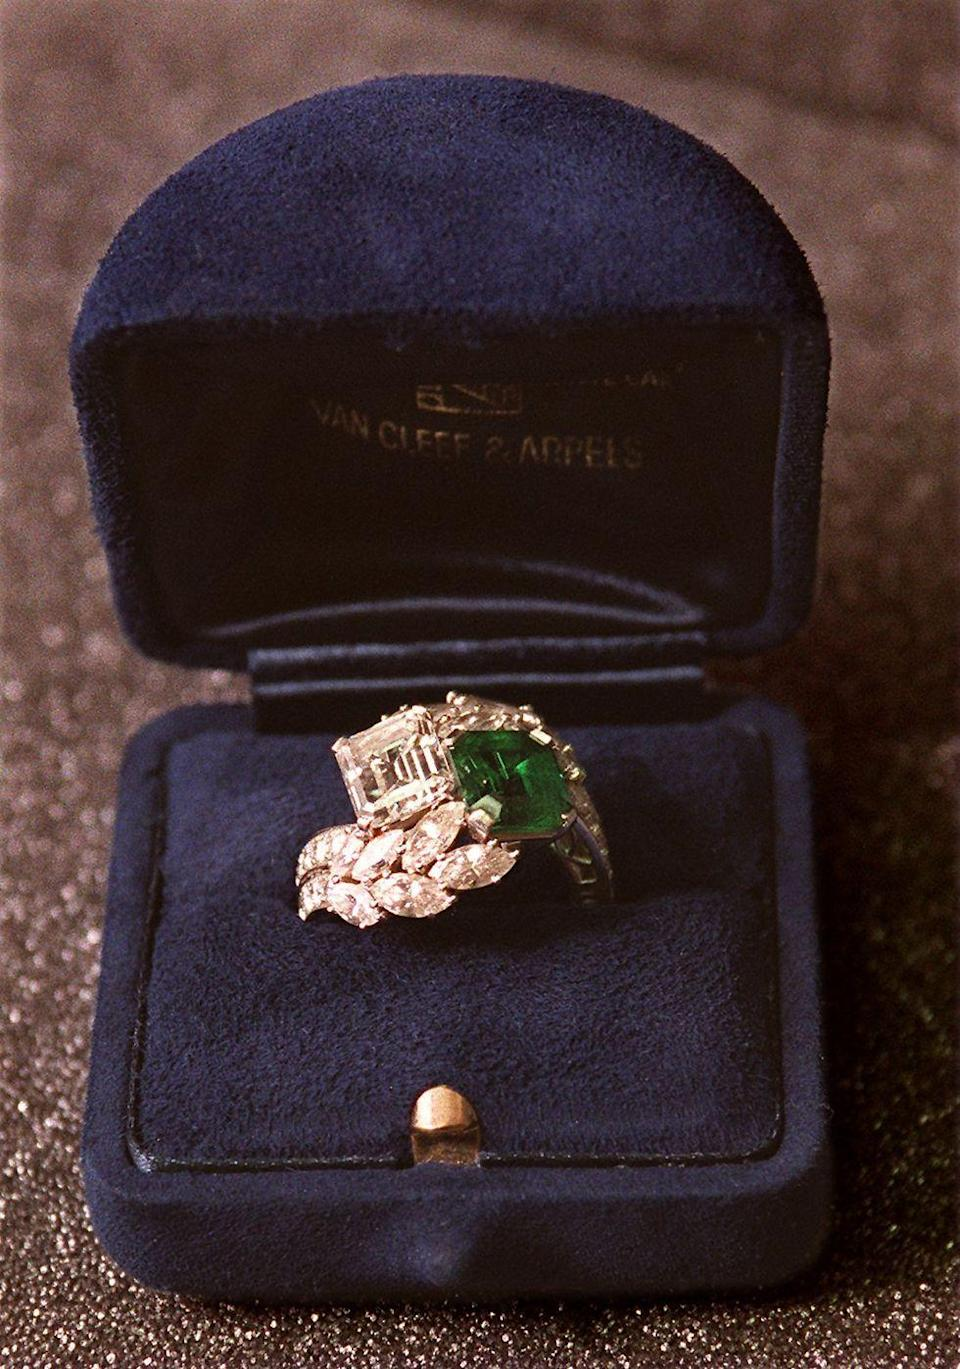 <p>The public took an interest in Jacqueline Kennedy long before she was the First Lady of the United States. In fact, her engagement ring from John F. Kennedy had a huge influence on engagement ring trends. The elaborate Van Cleef & Arpels ring was fitted with both an emerald cut diamond and emerald stone, nestled together with a leaf-shaped set of diamonds. </p>